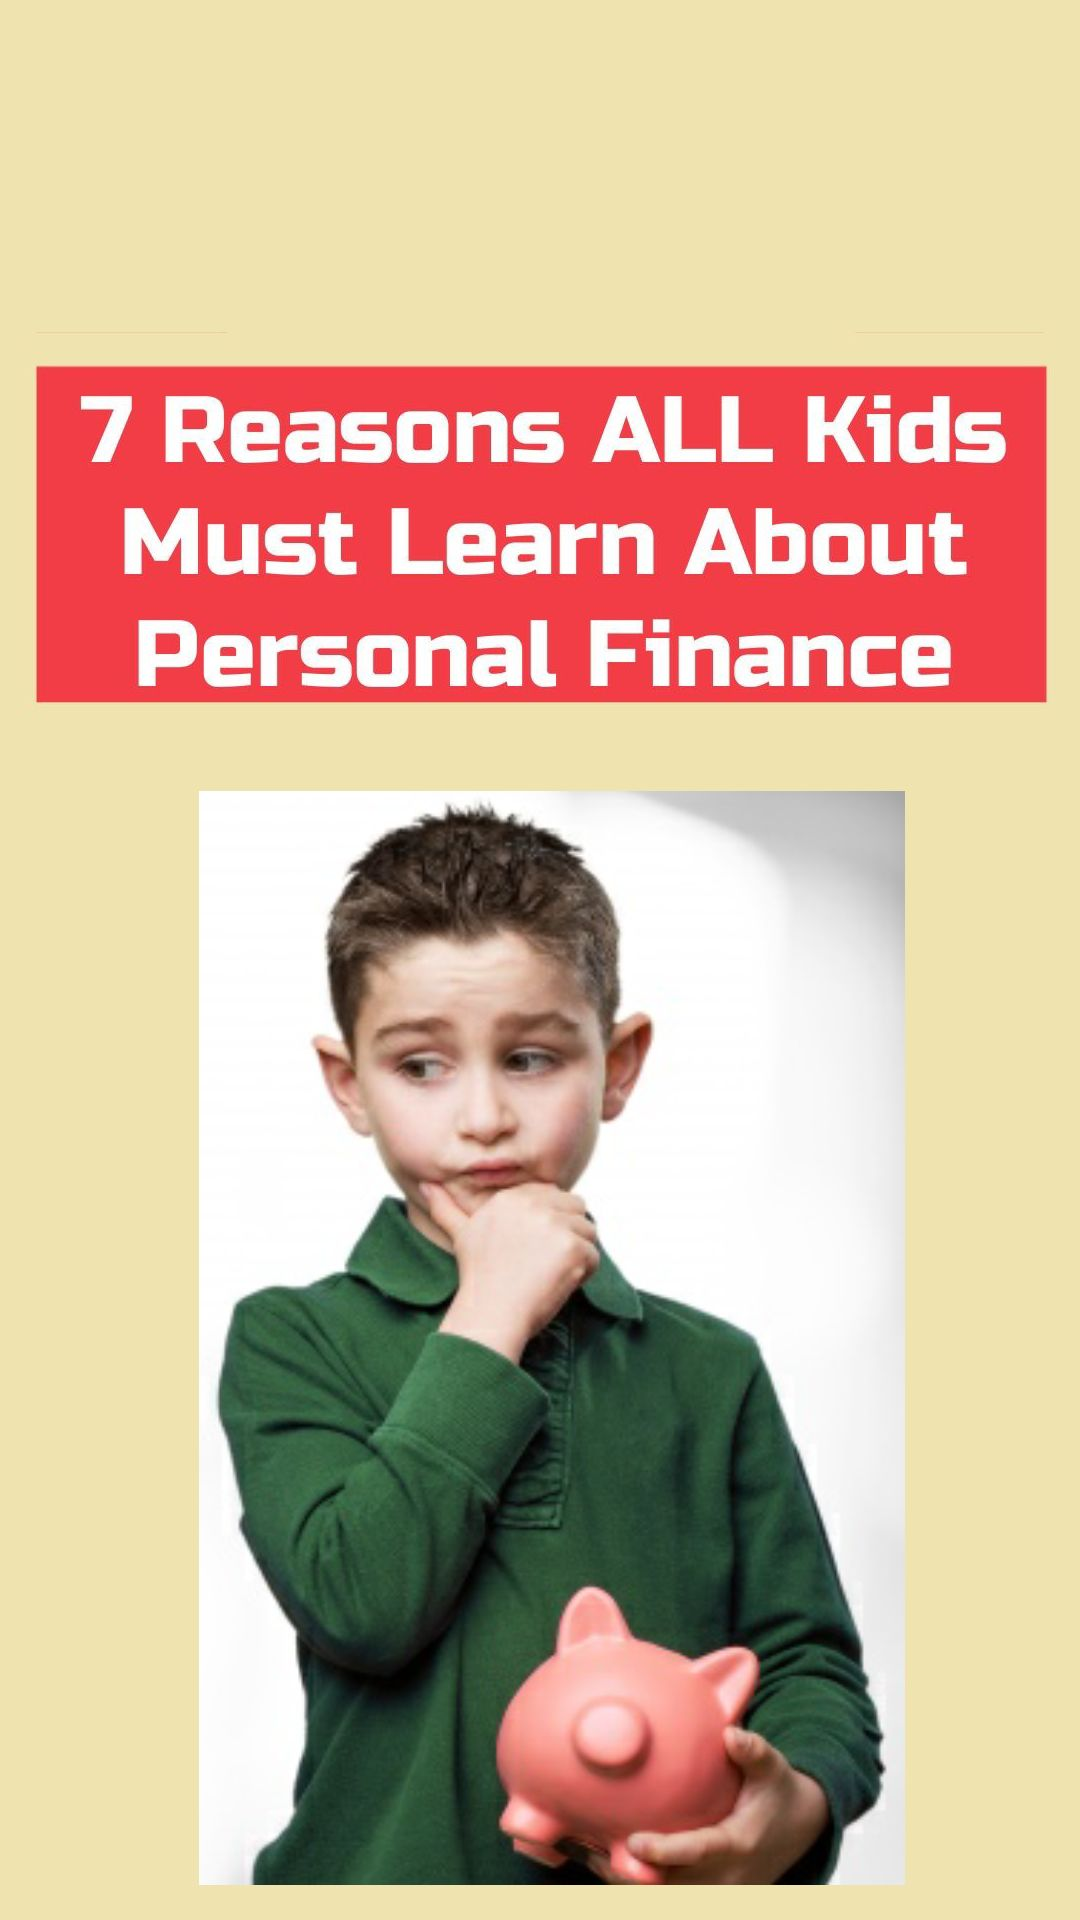 7 Reasons ALL Kids Must Learn About Personal Finance - Shorts